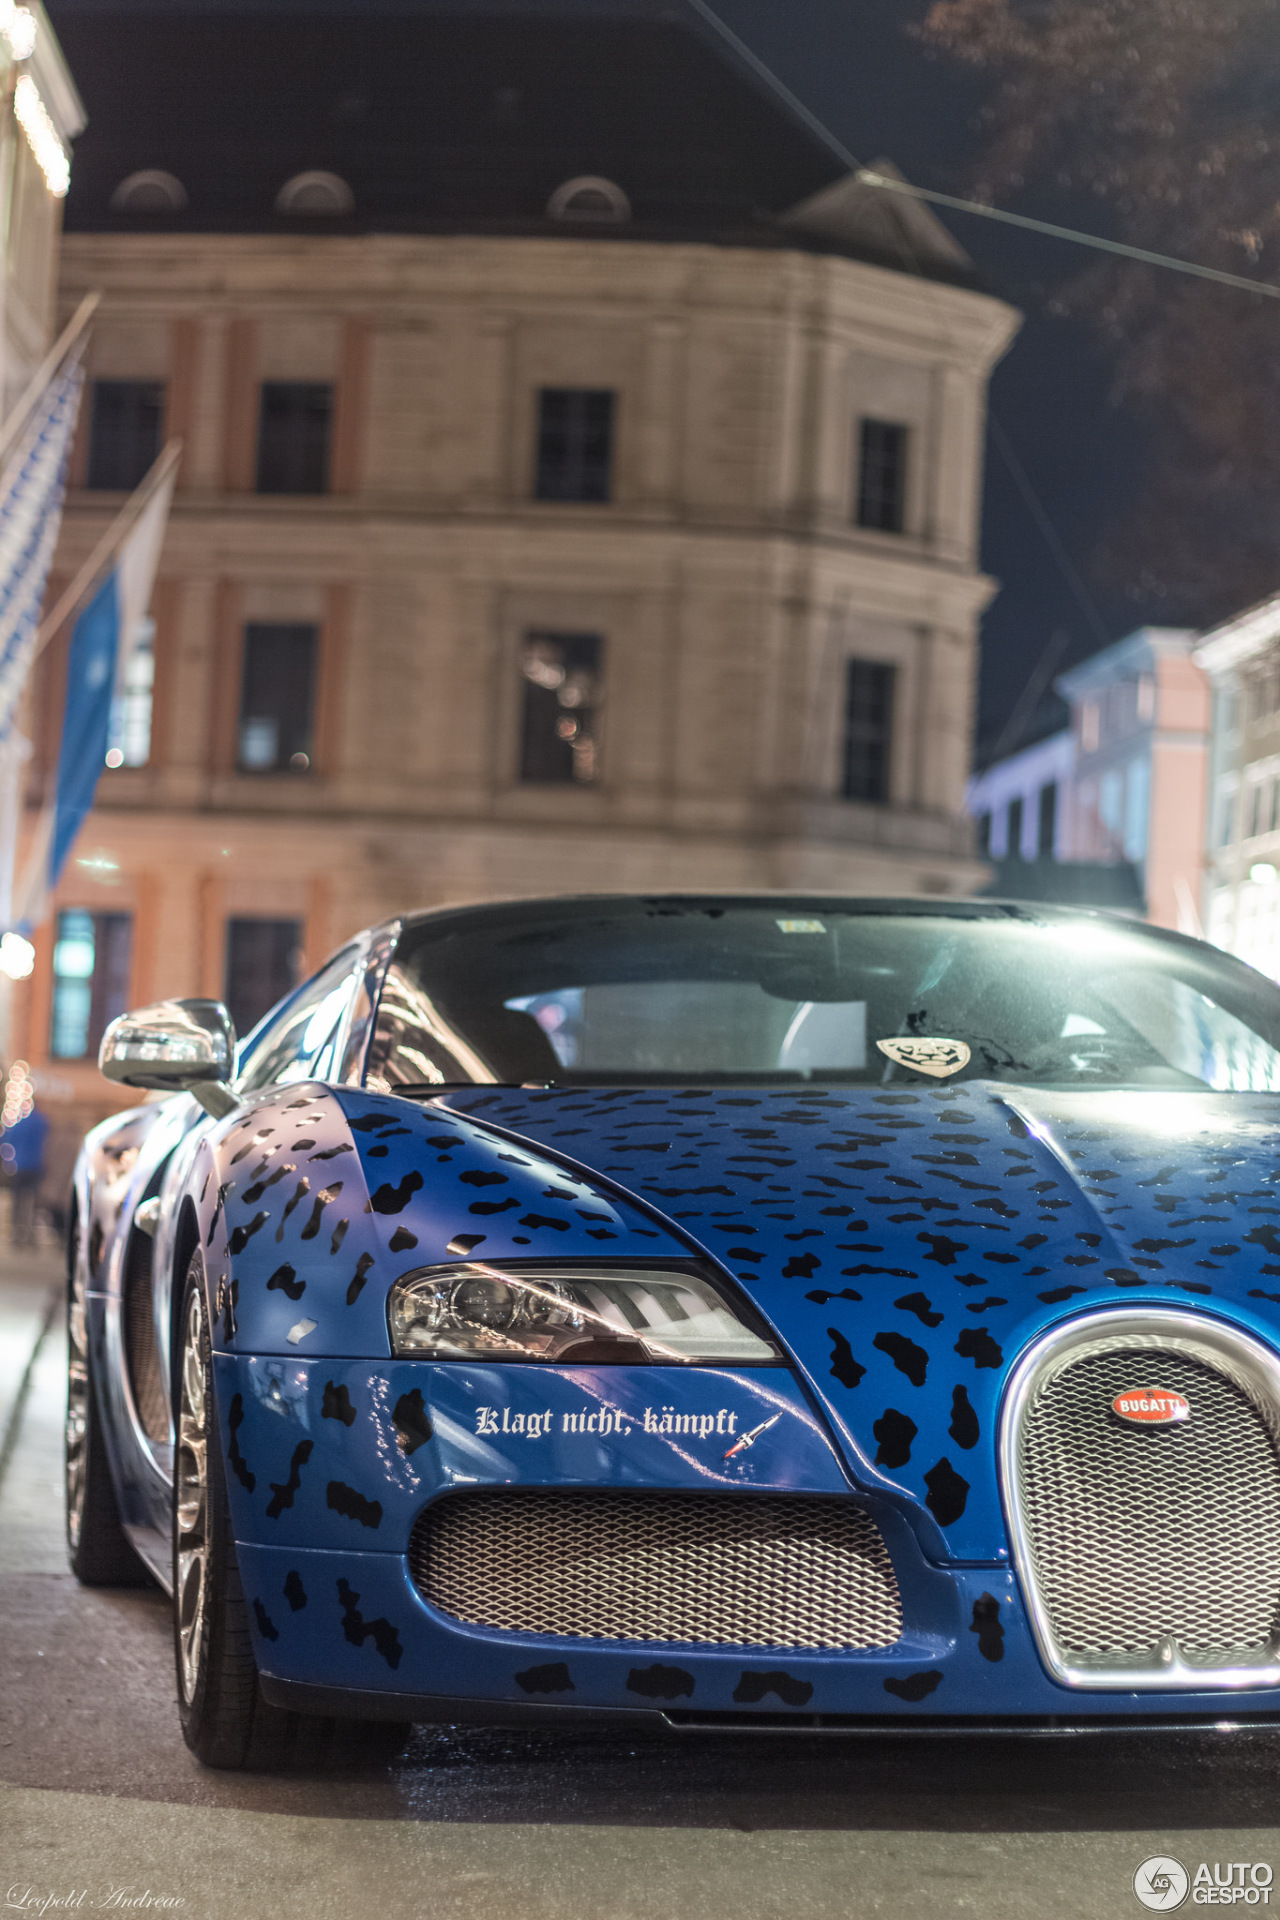 bugatti-veyron-164-grand-sport-c520703072017152736_6 Surprising Bugatti Veyron Price In Bahrain Cars Trend